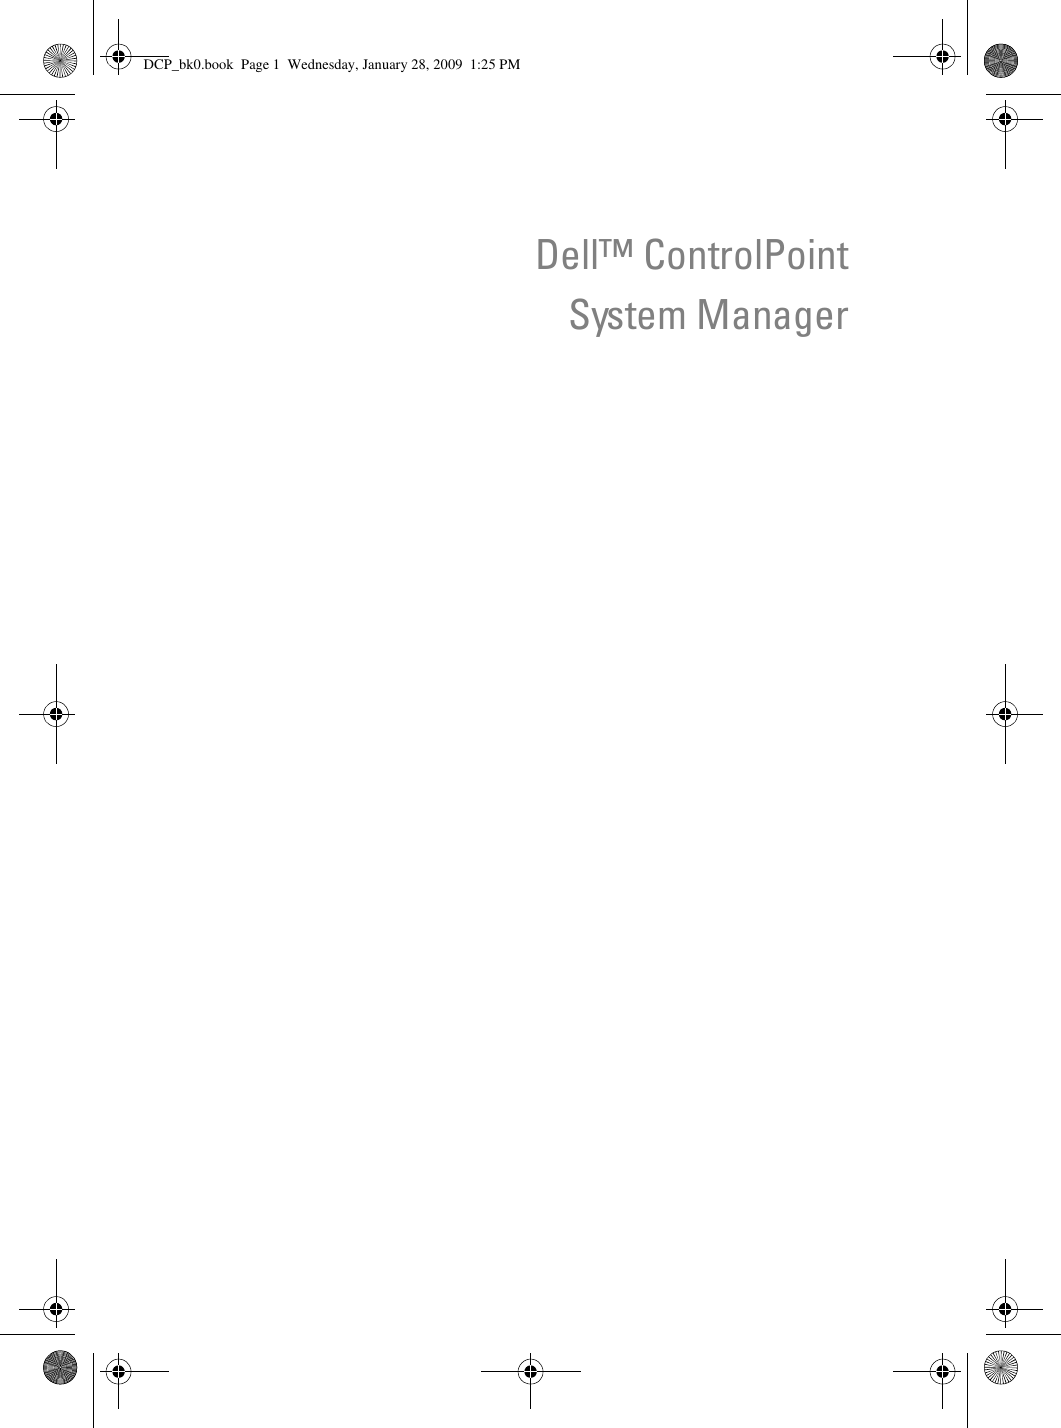 DELL CONTROLPOINT SYSTEM MANAGER WINDOWS DRIVER